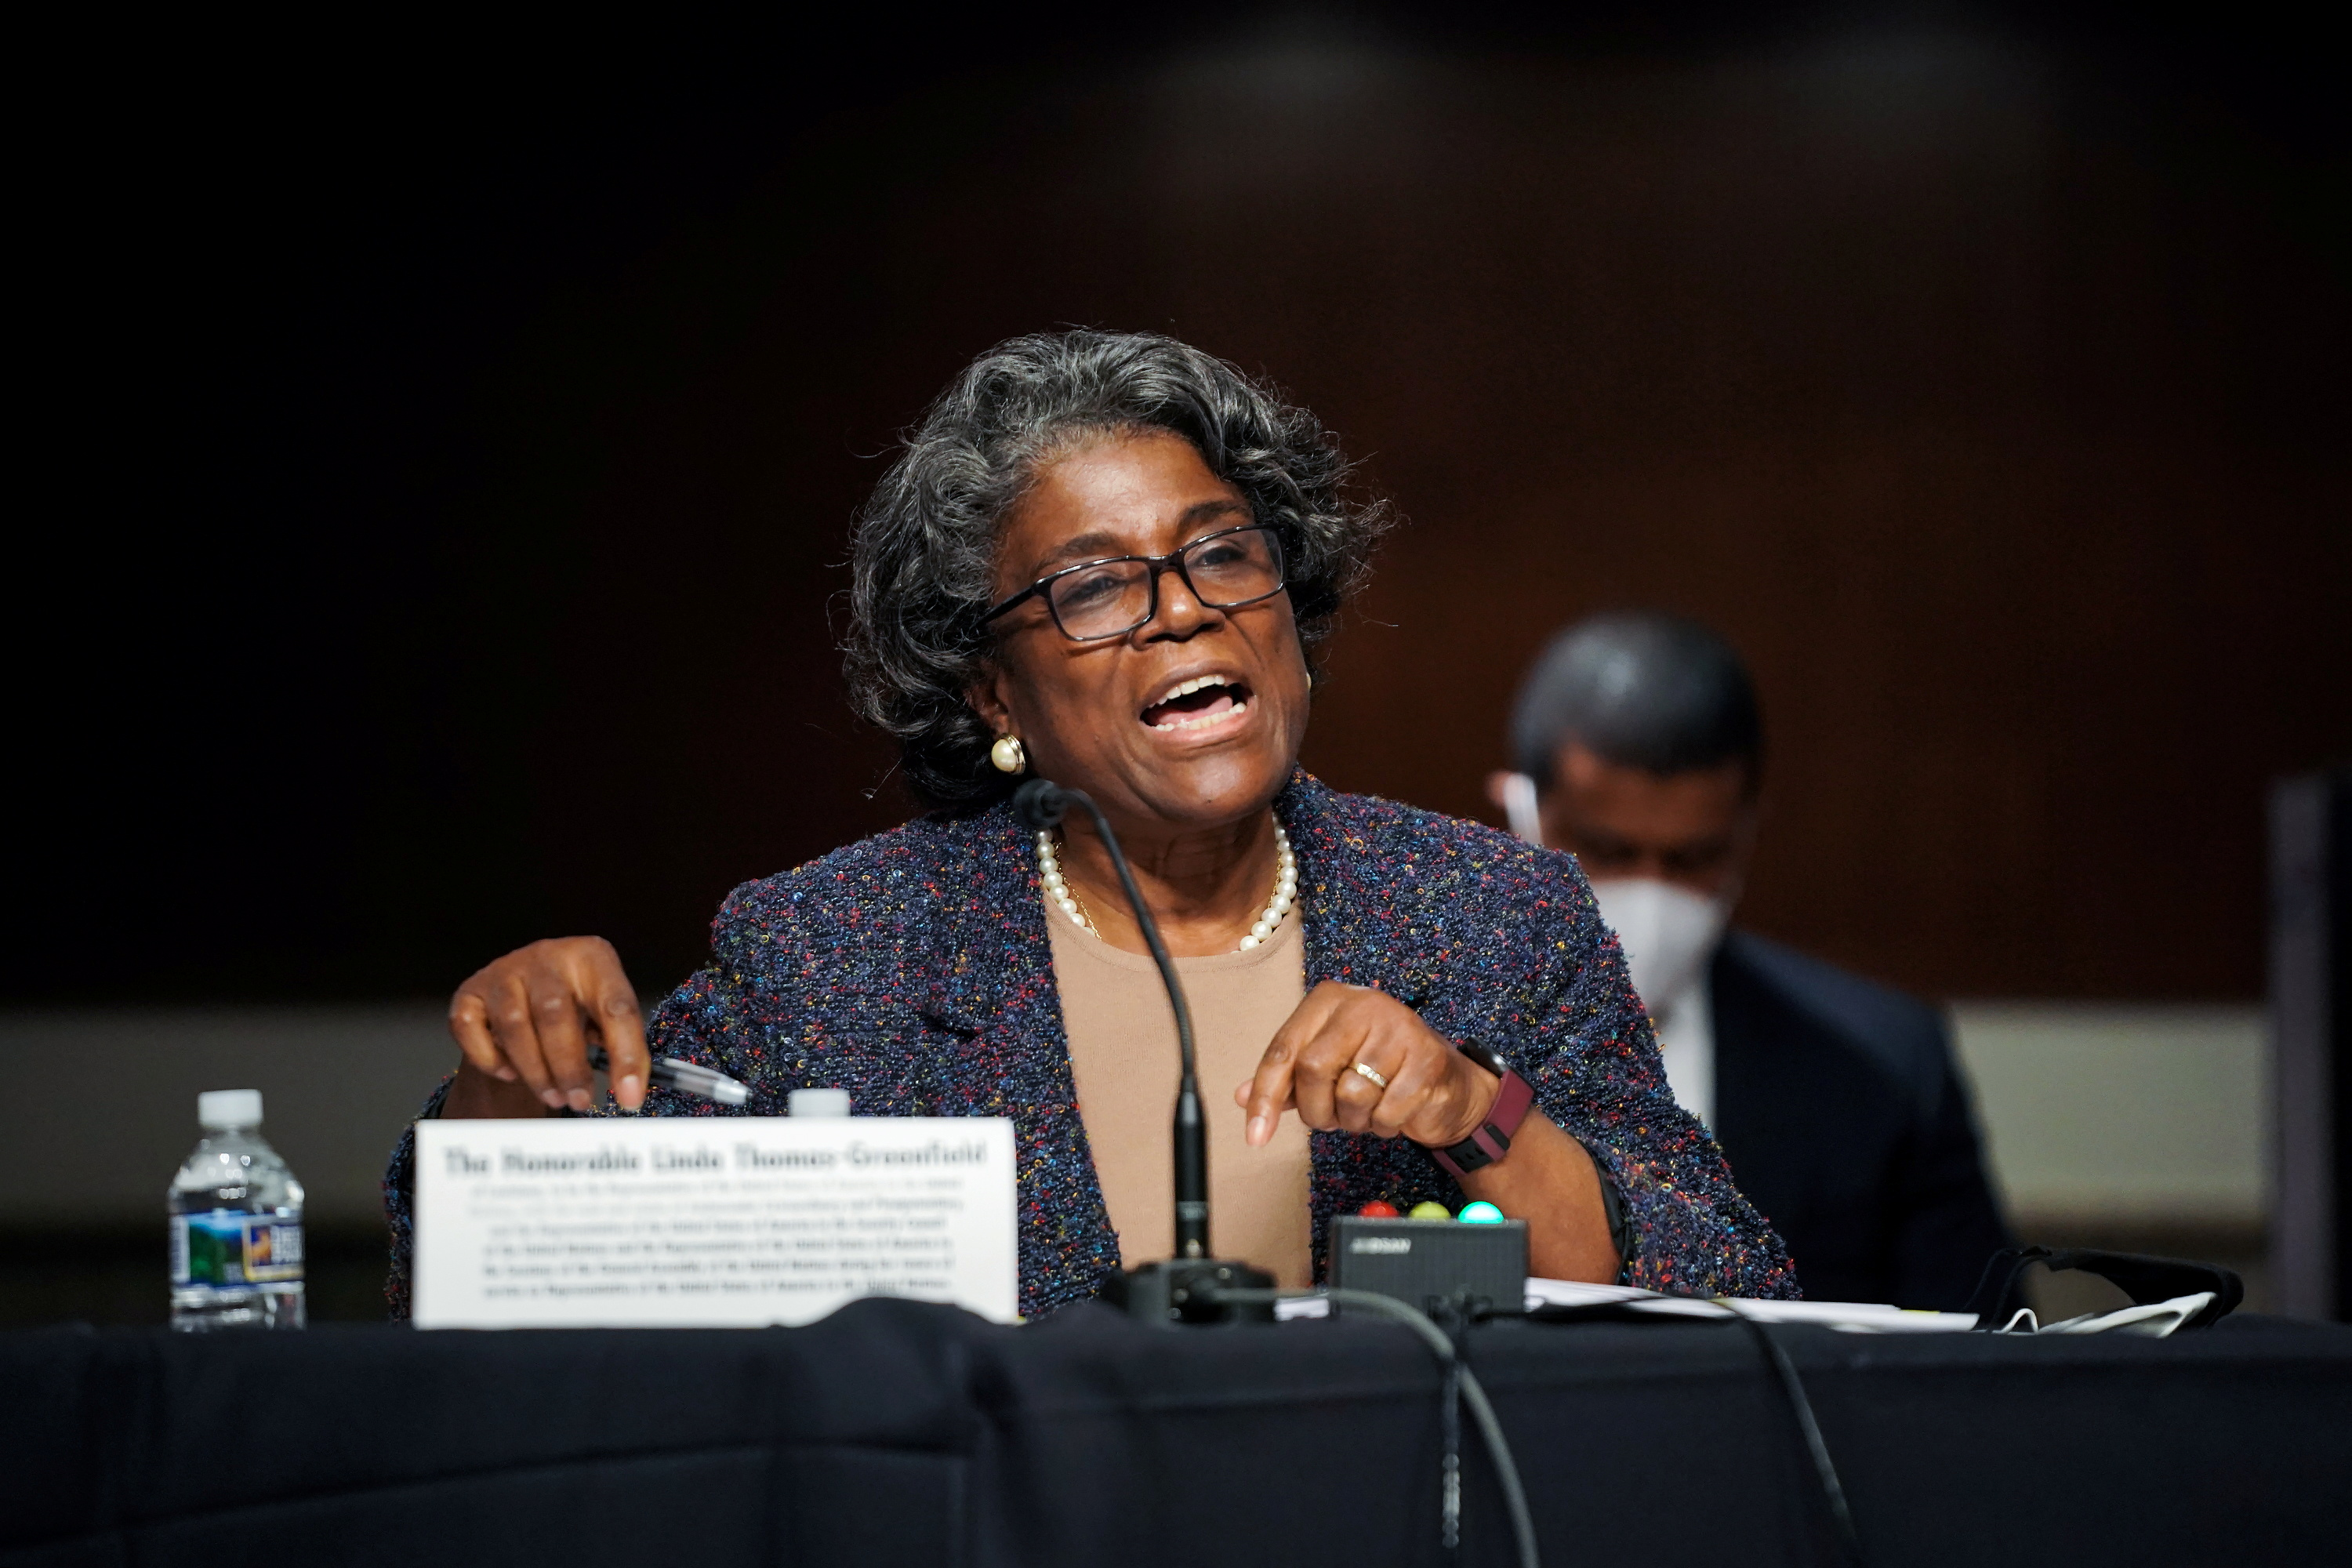 Linda Thomas-Greenfield answers questions during the Senate Foreign Relations Committee hearing on her nomination to be the United States Ambassador to the United Nations, on Capitol Hill in Washington, D.C., U.S., January 27, 2021. Greg Nash/Pool via REUTERS